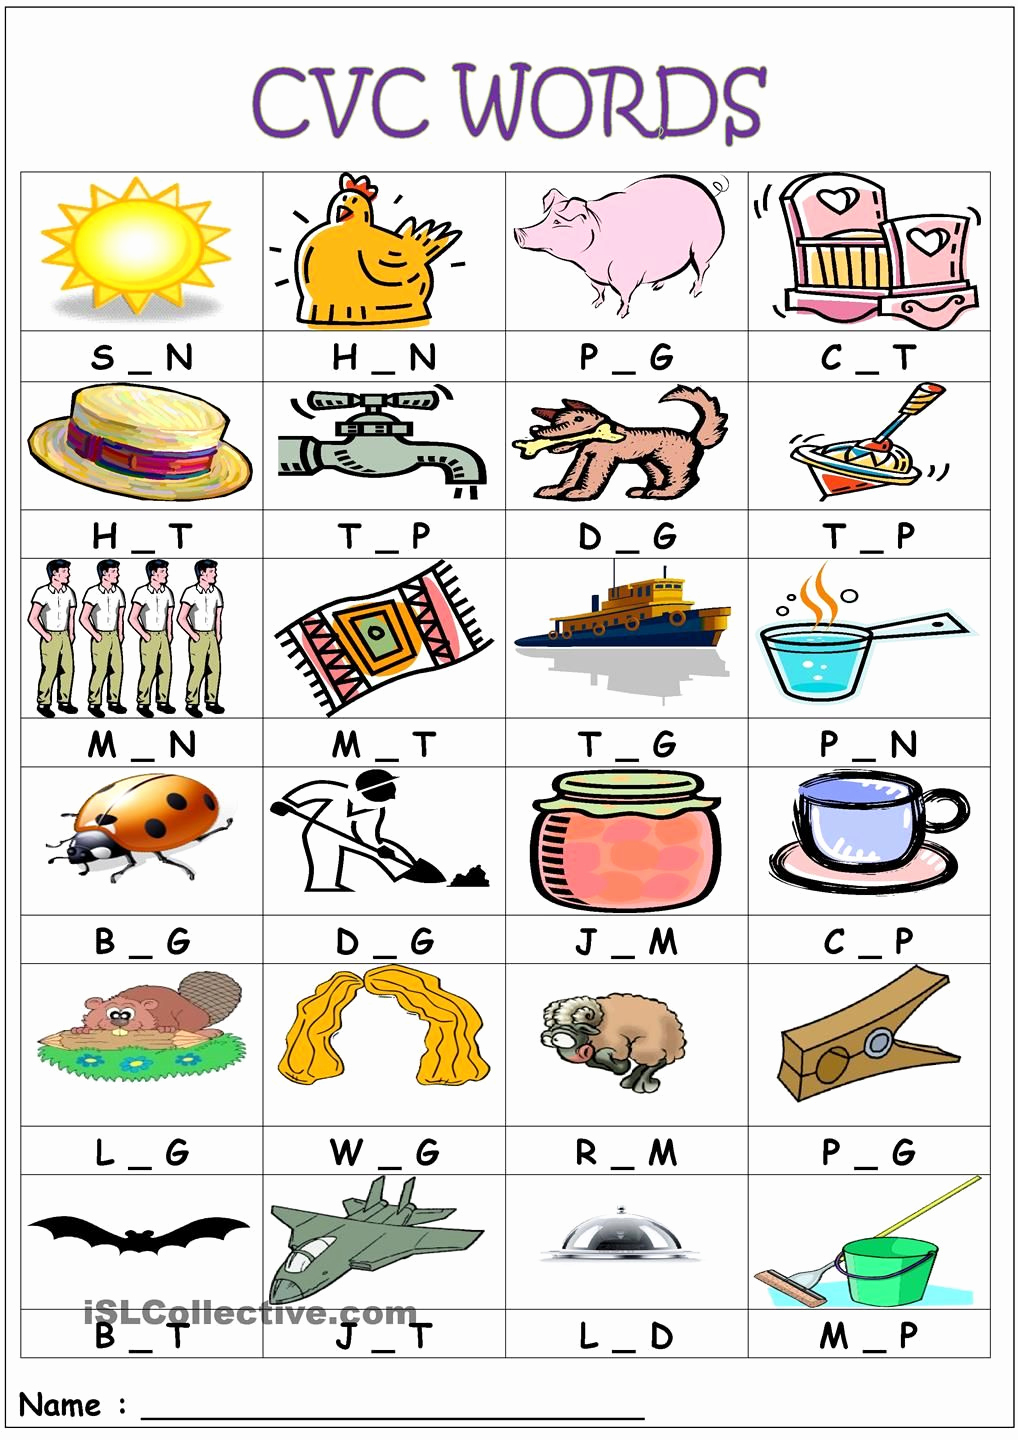 Medial sounds Worksheets First Grade Elegant Cvc Words Medial sounds